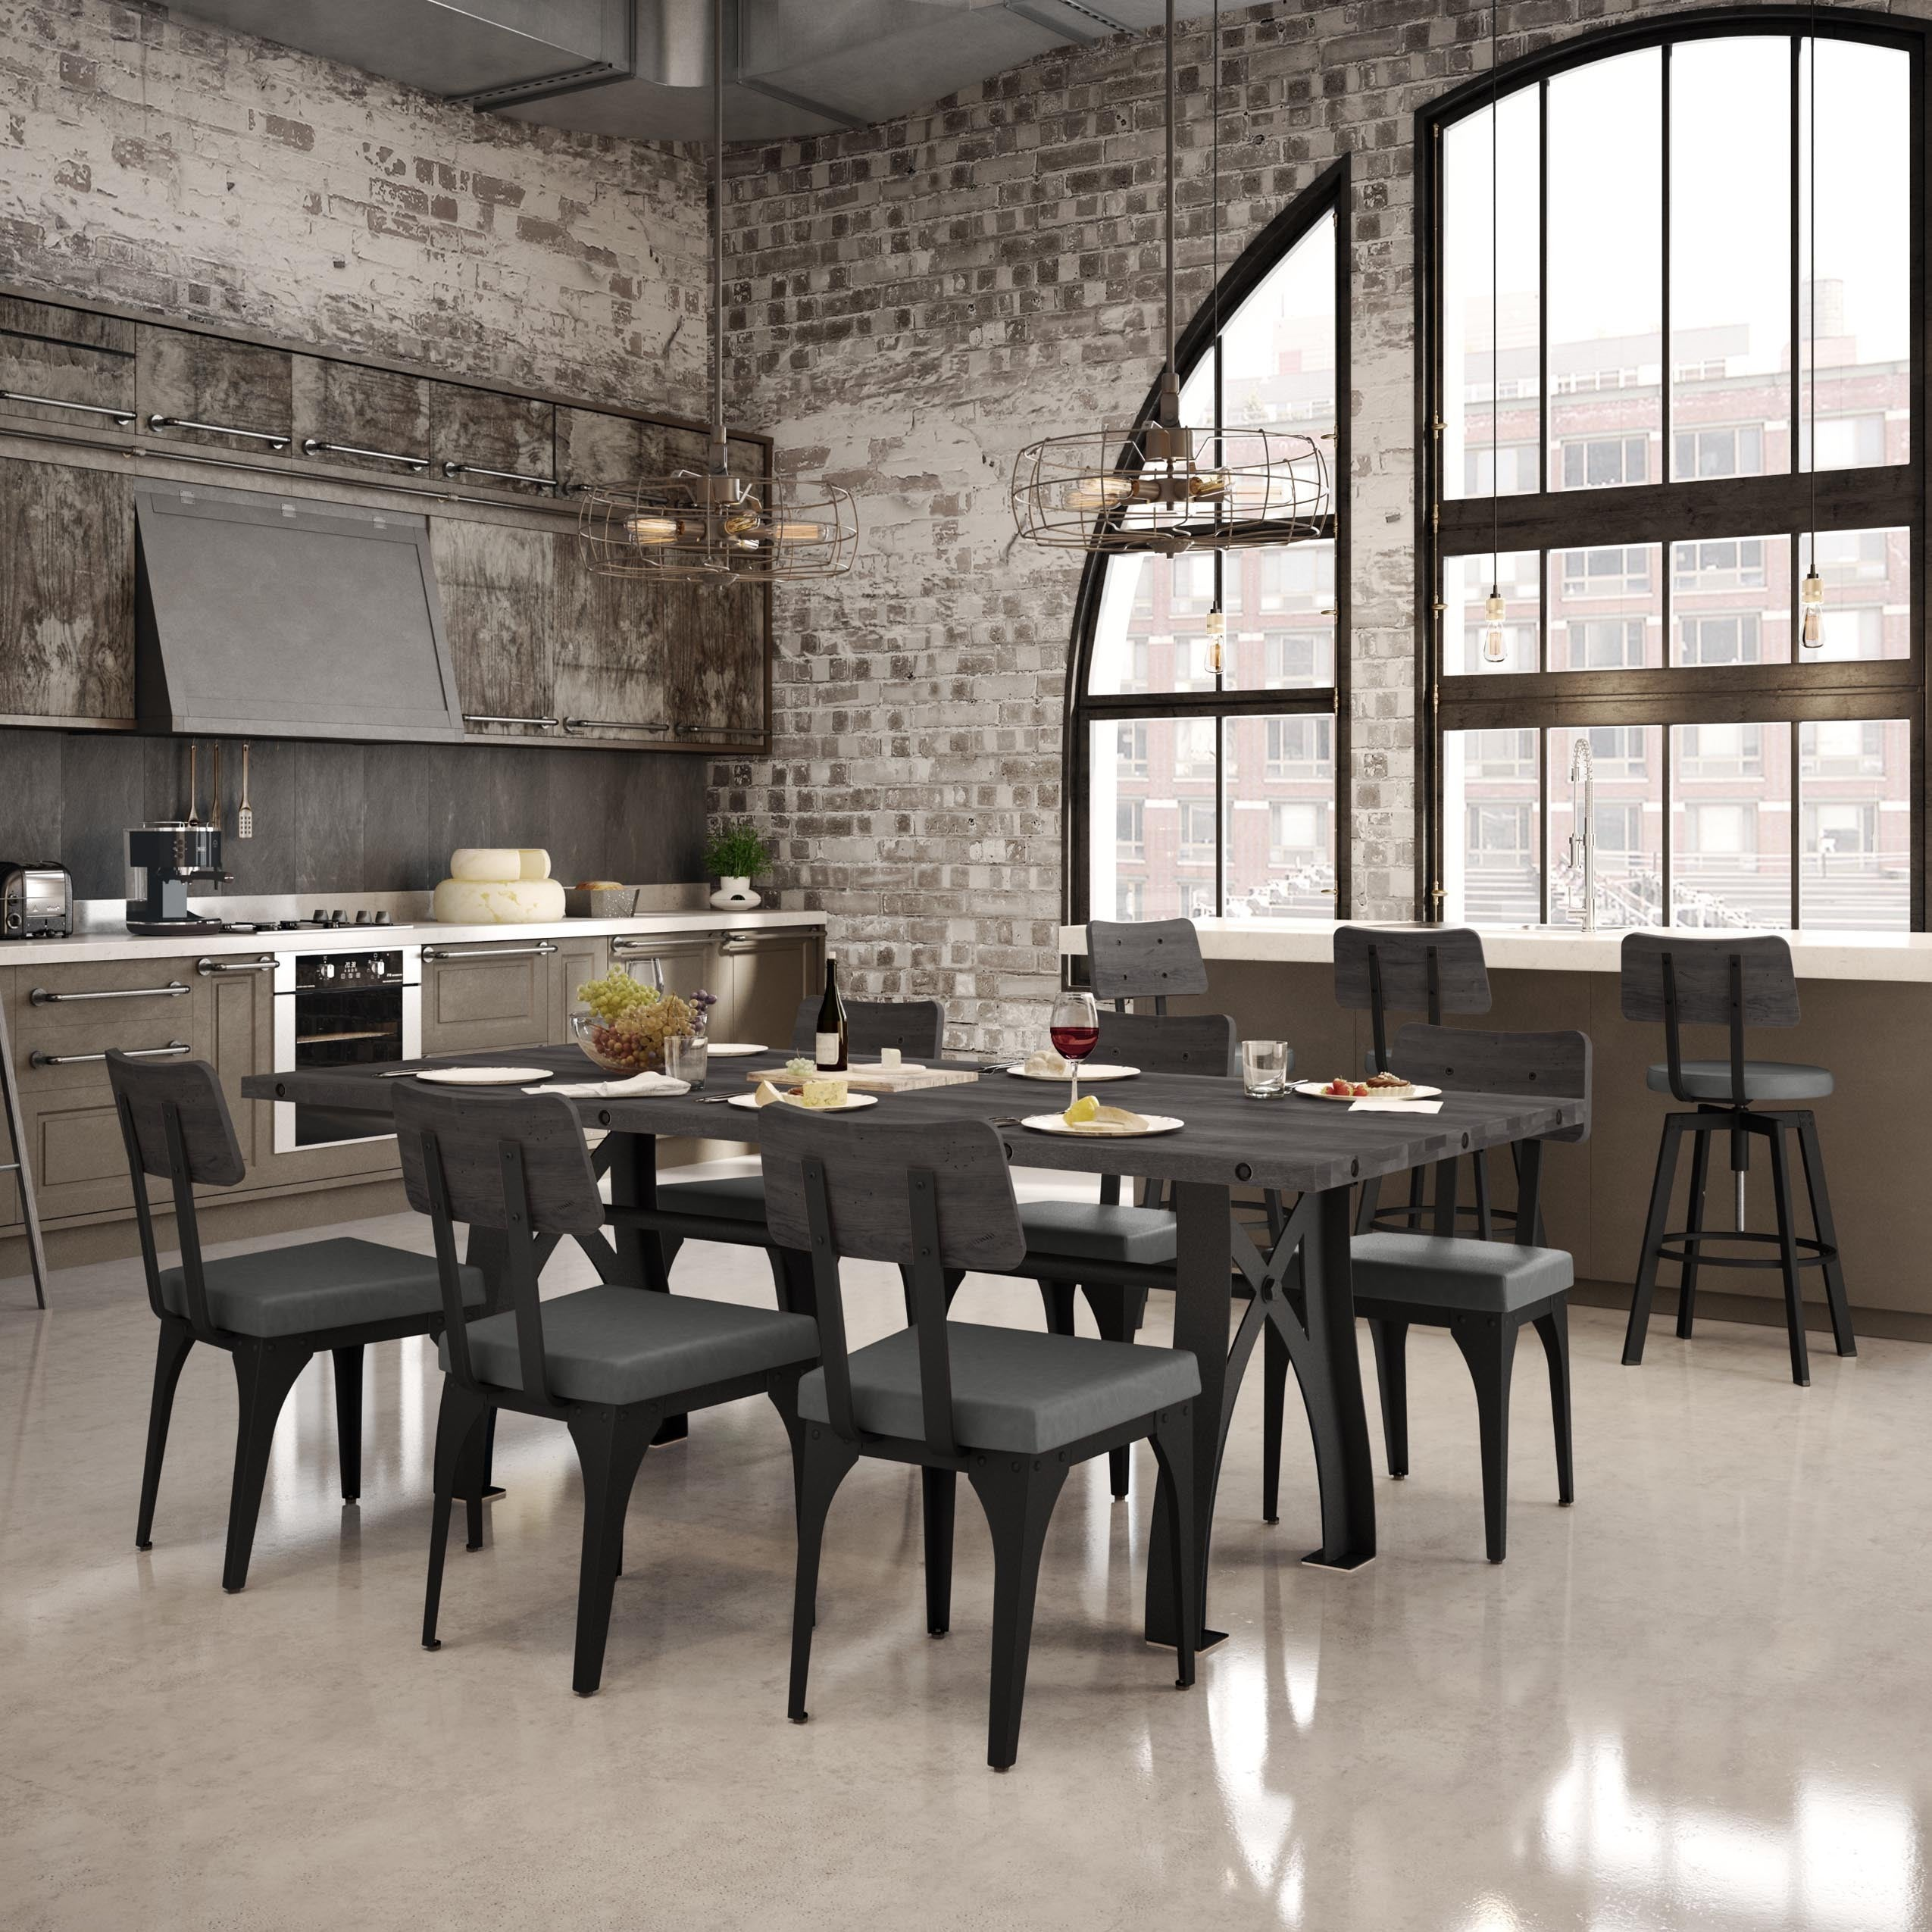 Shop Carbon Loft Kettering Metal Chairs and